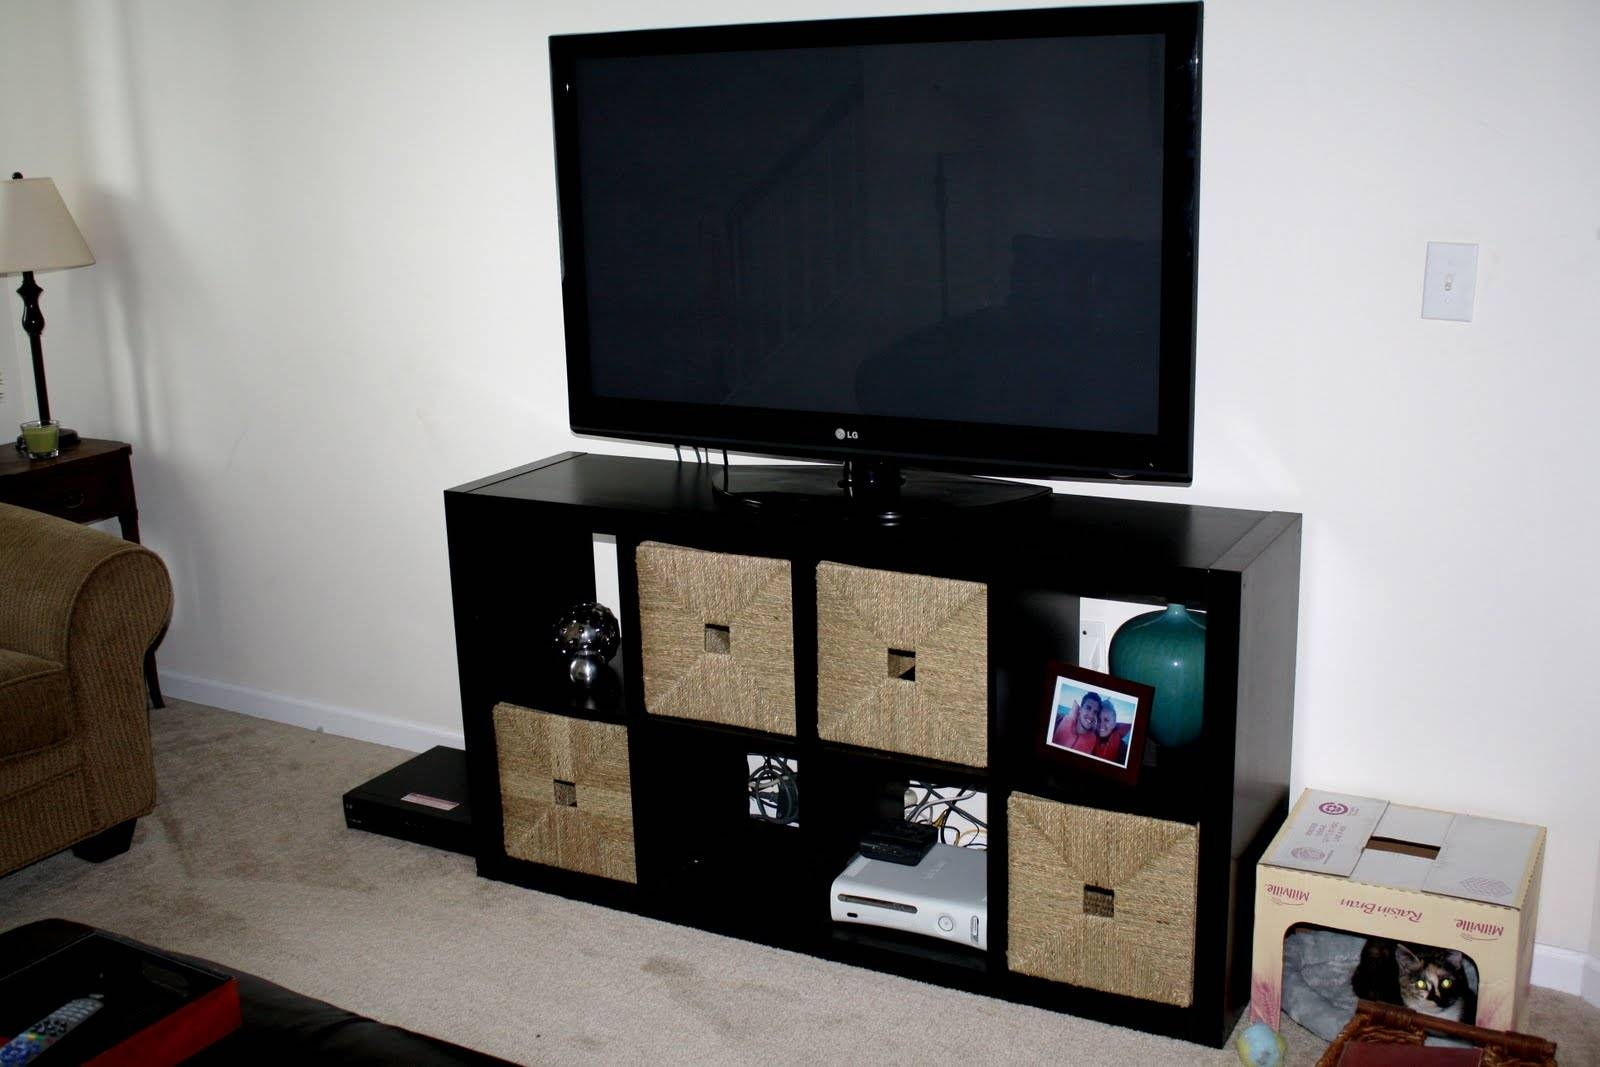 Furniture Home: Outstanding Ikea Bookcase Tv Stand 132 Ikea Inside Bookshelf And Tv Stands (View 14 of 15)